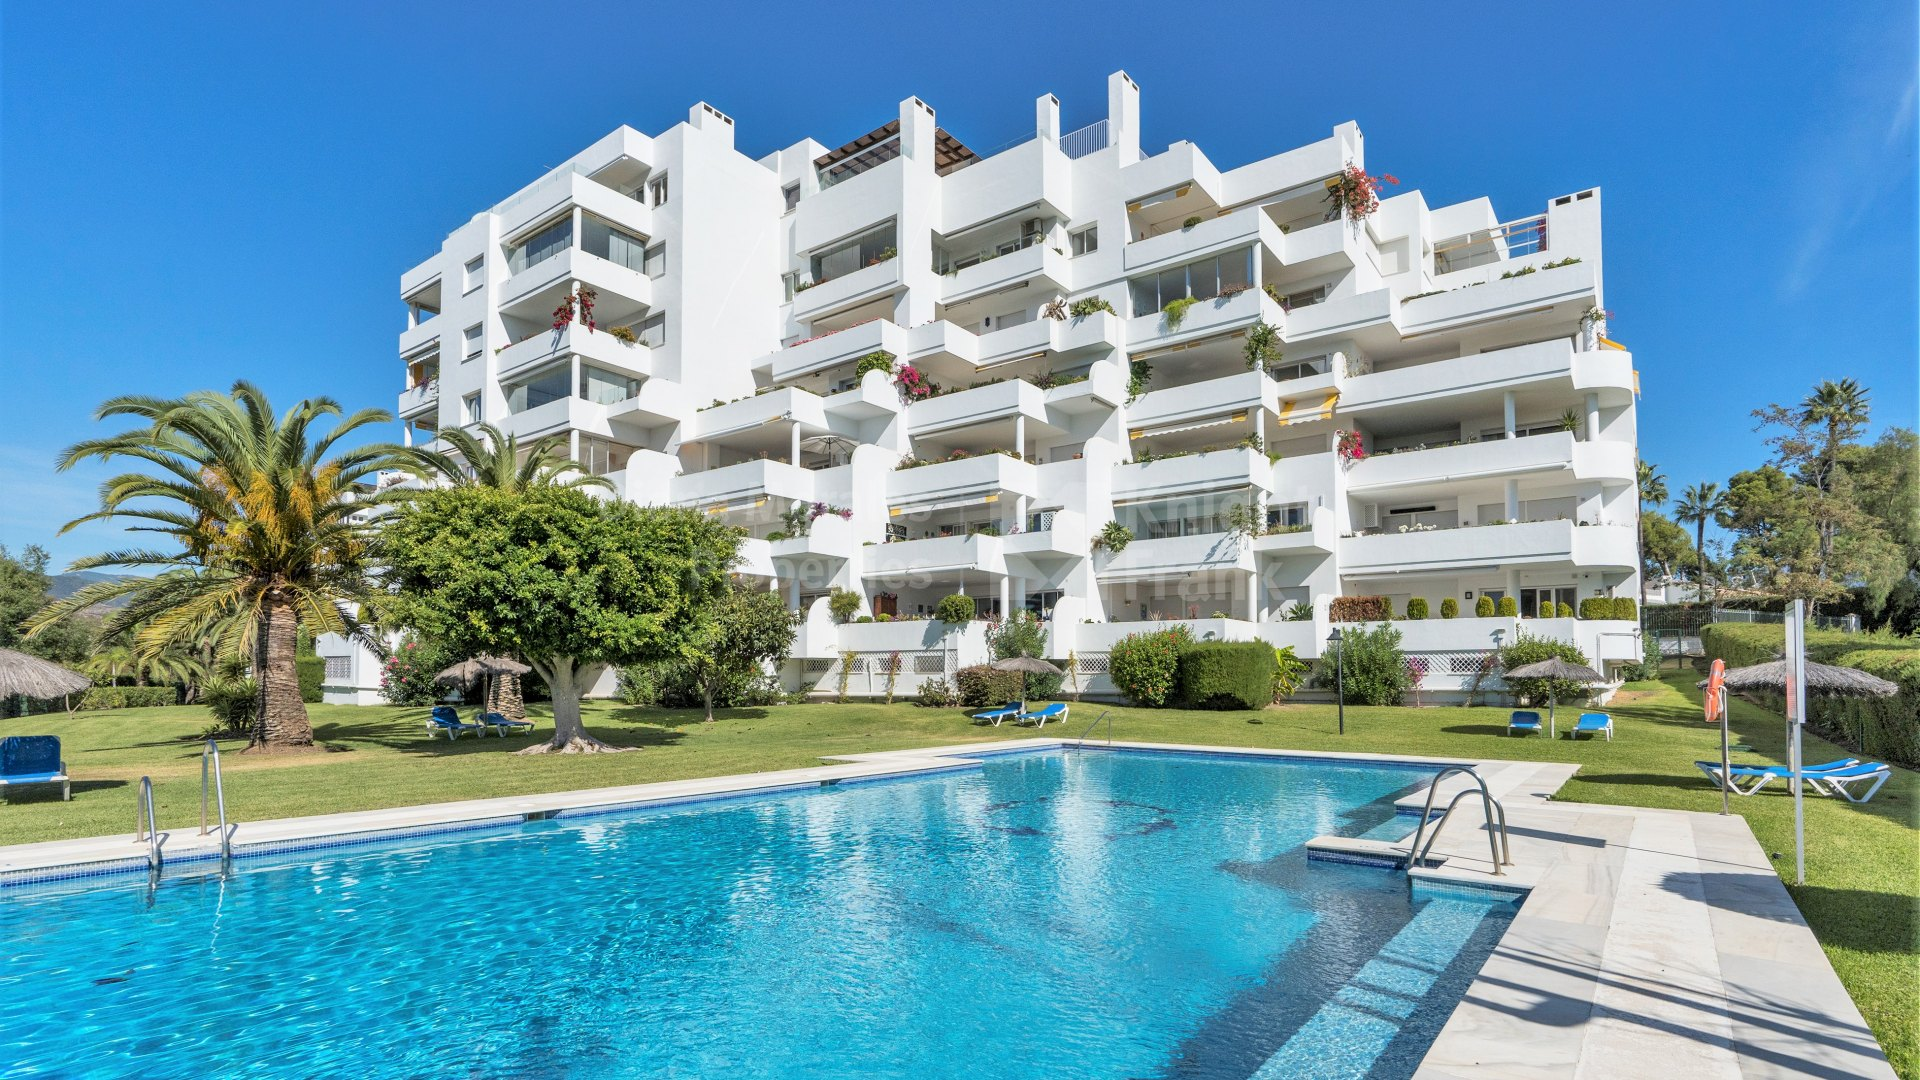 Marbella city, Very large, bright and elegant golf apartment near the sea